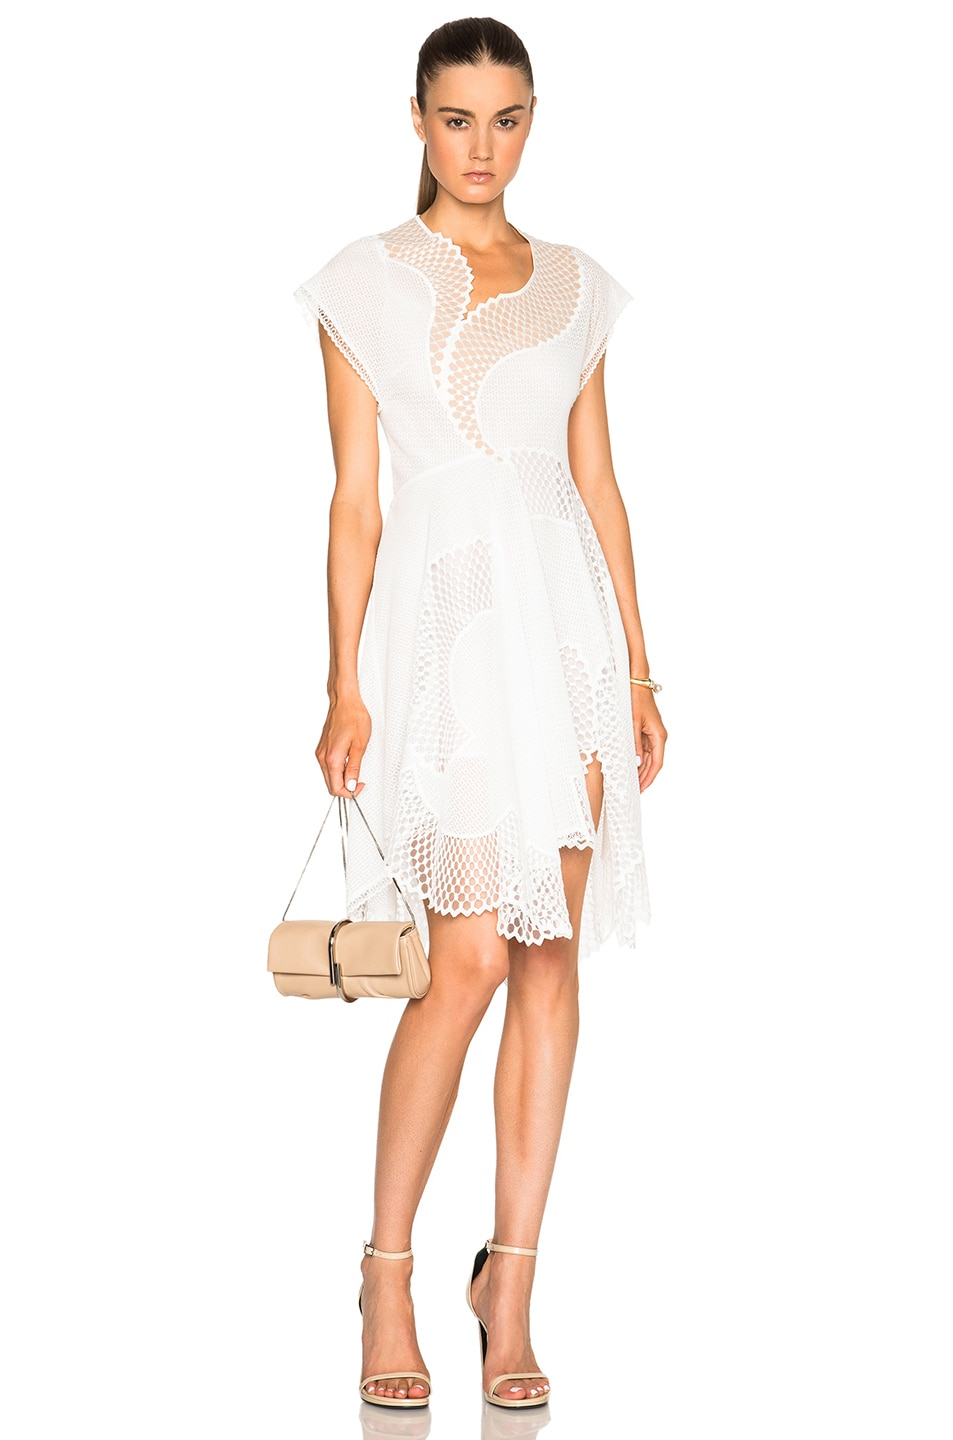 Stella McCartney Clotilde Mesh Dress in White